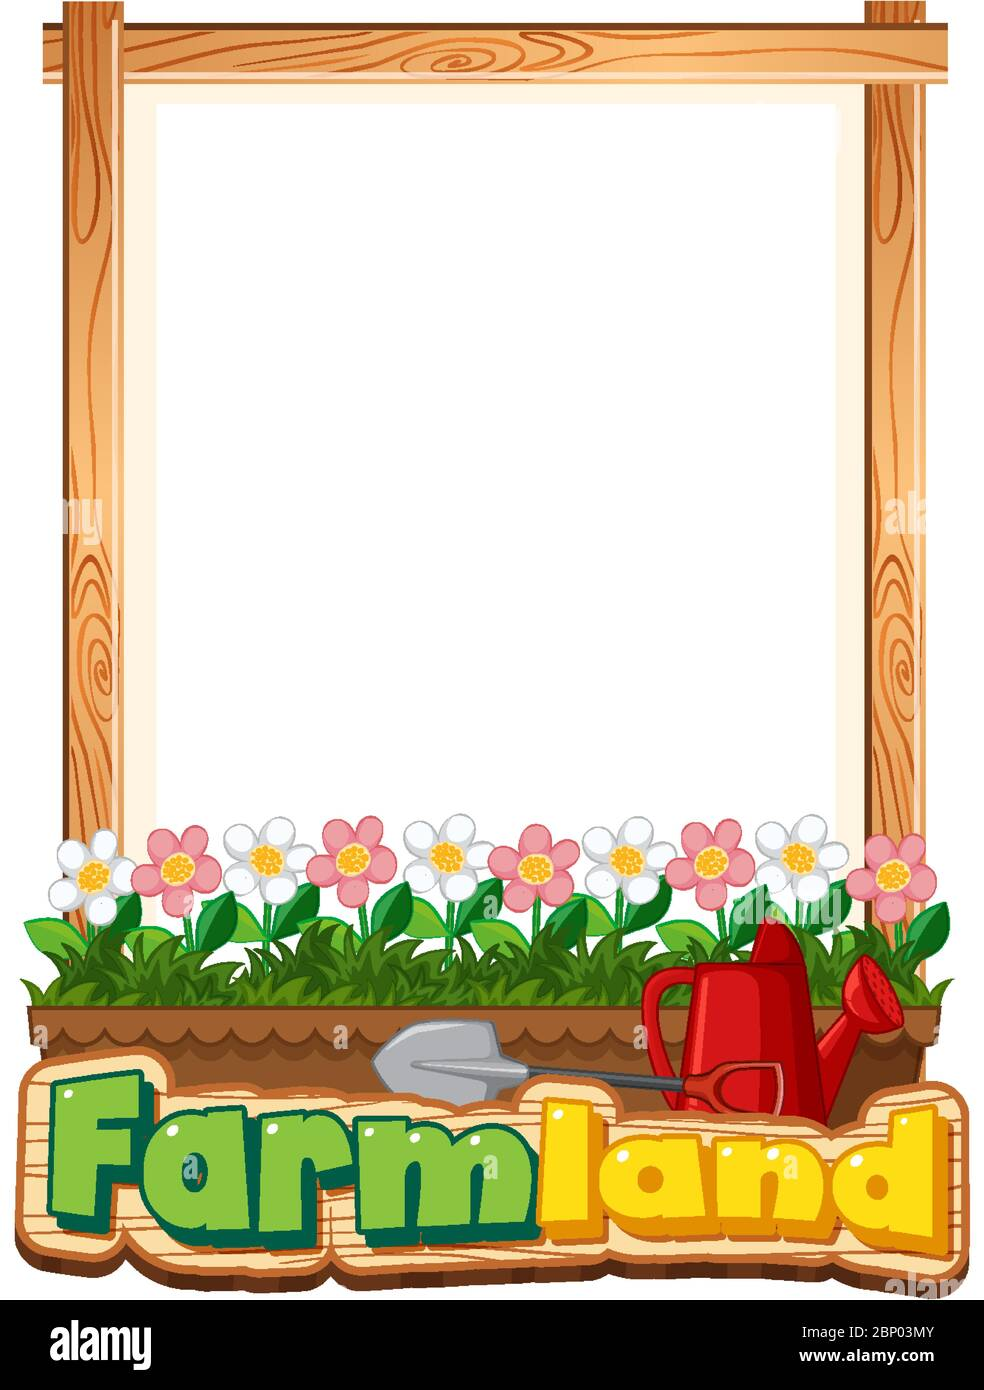 Border template design with beautiful flowers in garden